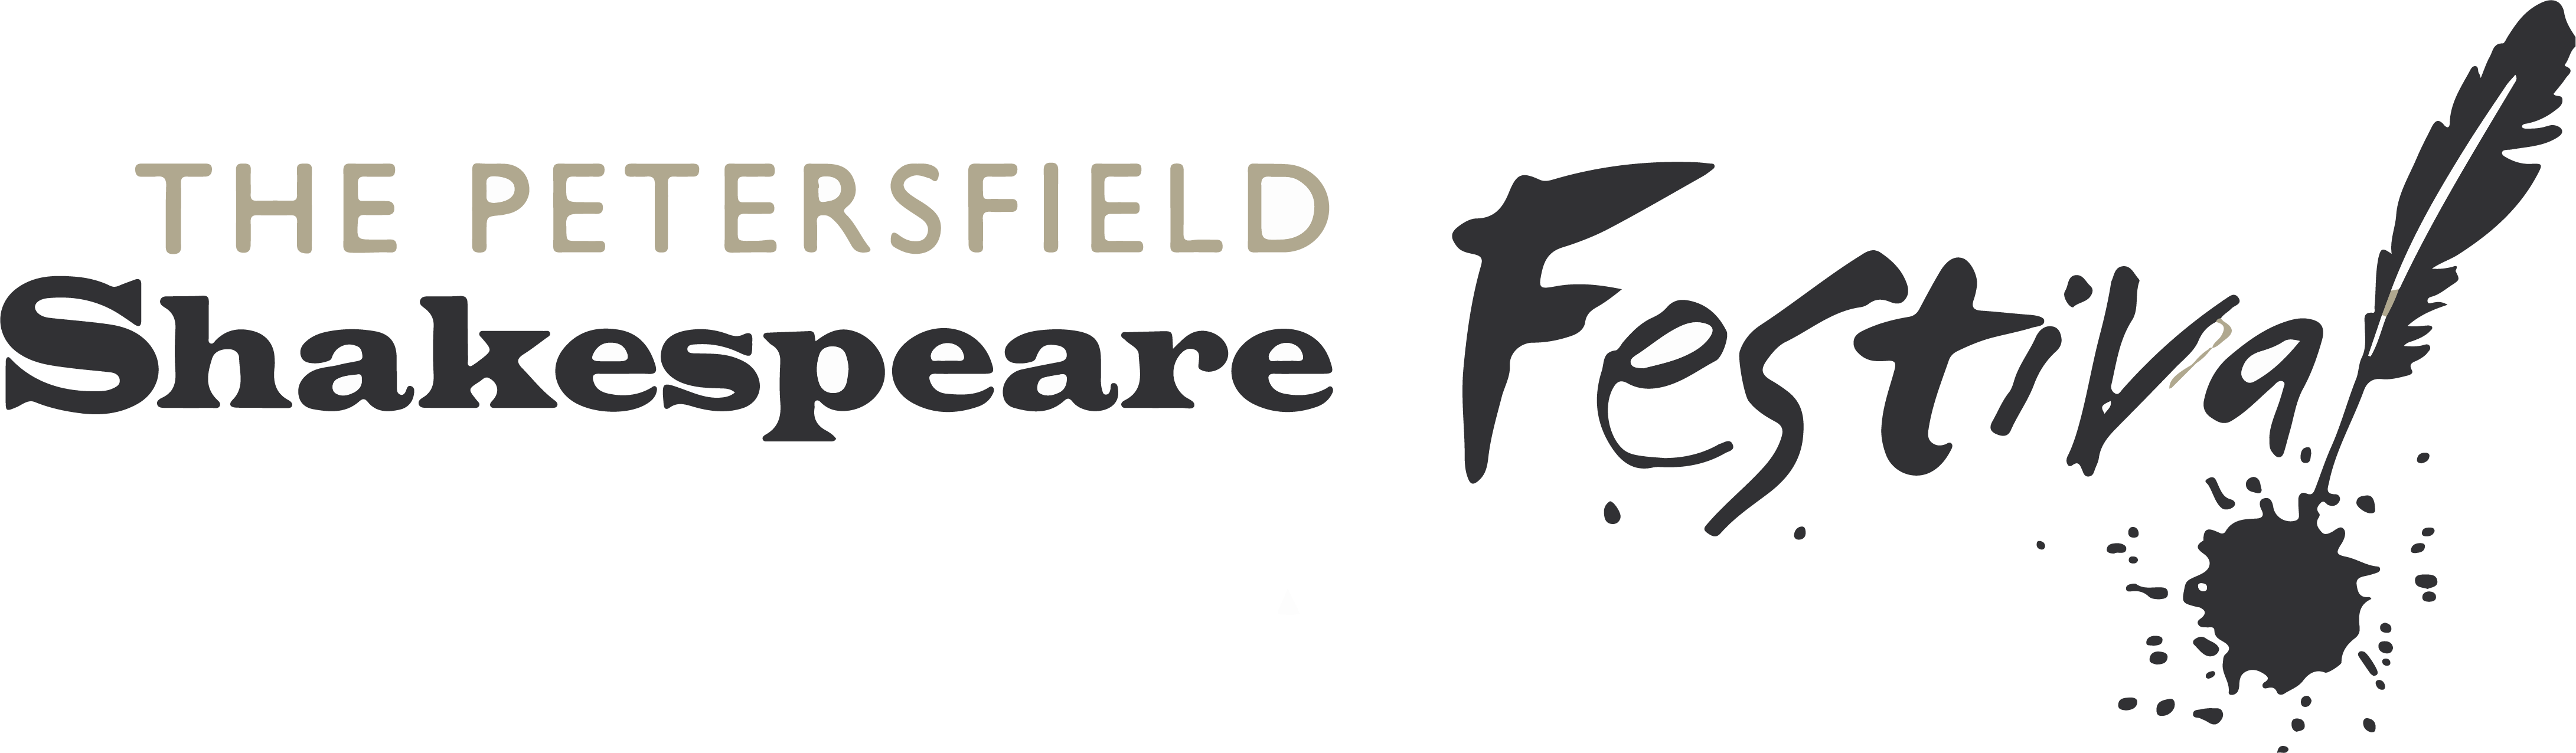 The Petersfield Shakespeare Festival